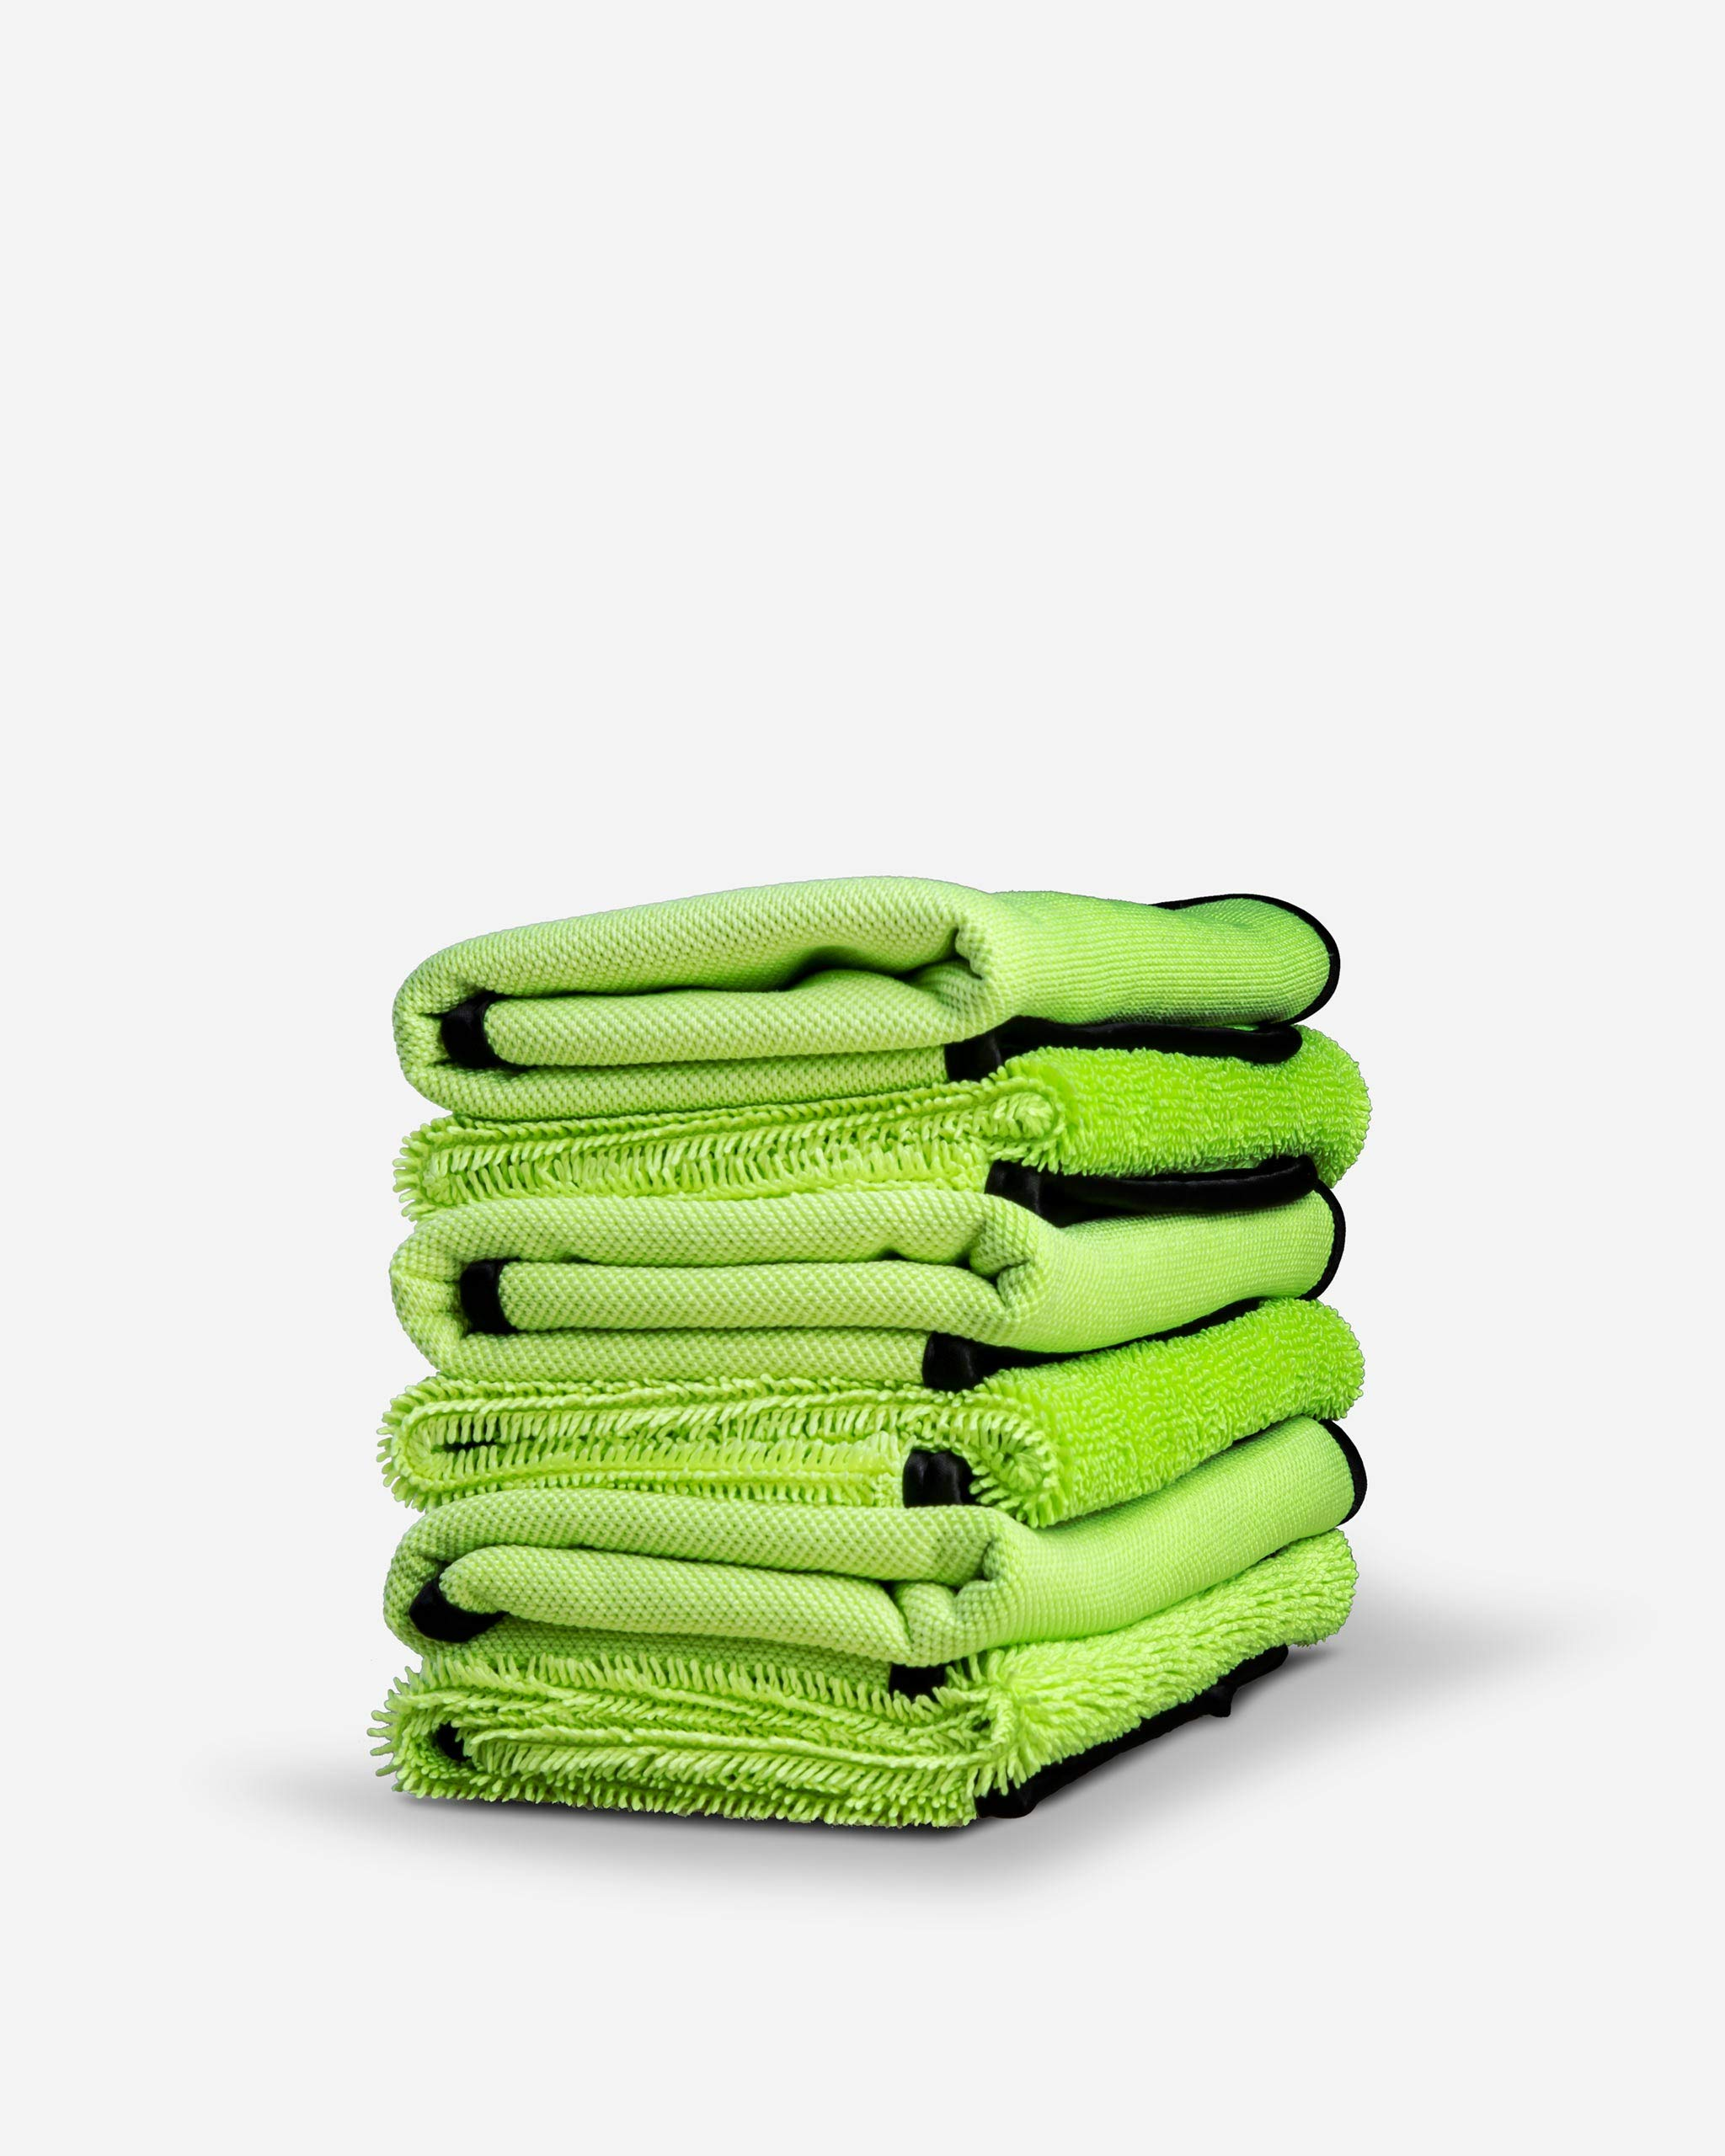 Adam's Microfiber Glass Cleaning Towel - Two Sided, Streak Free Glass Cleaning Towel - Soft Satin Stitched Edges 540 GSM (6 Pack)